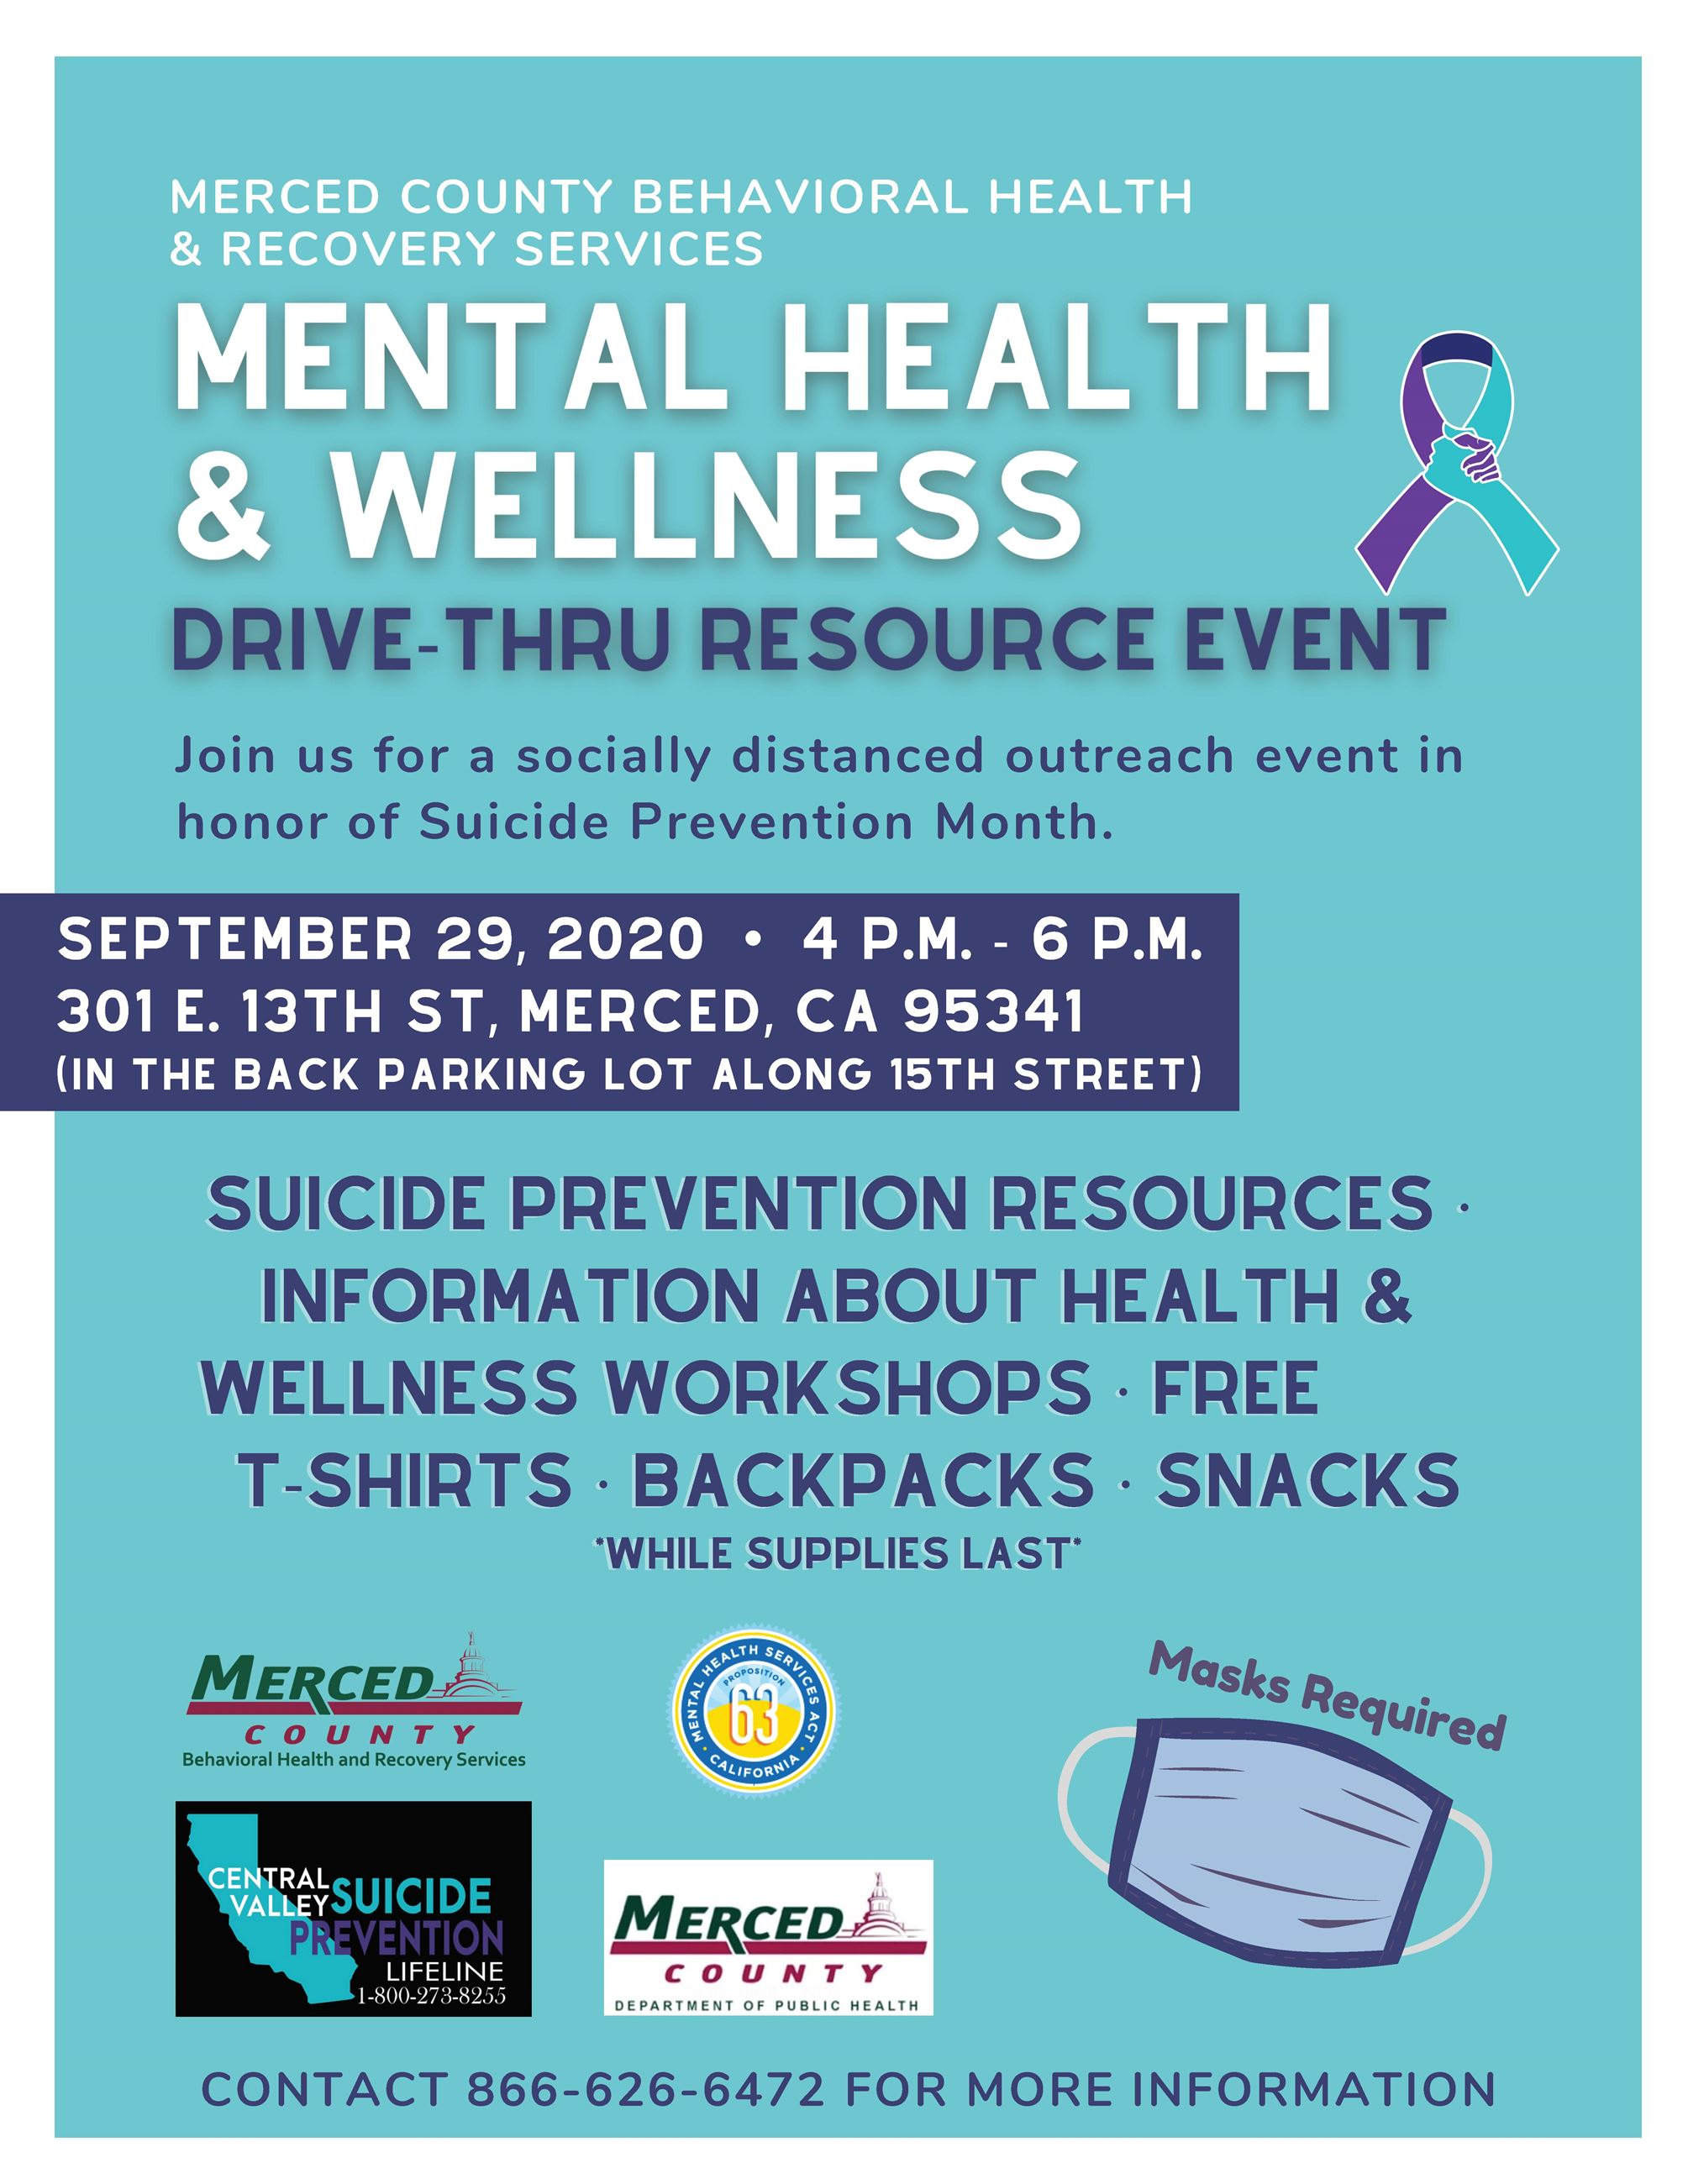 Flyer for Suicide Prevention and Awareness Outreach Drive Through Event on 09-29-2020